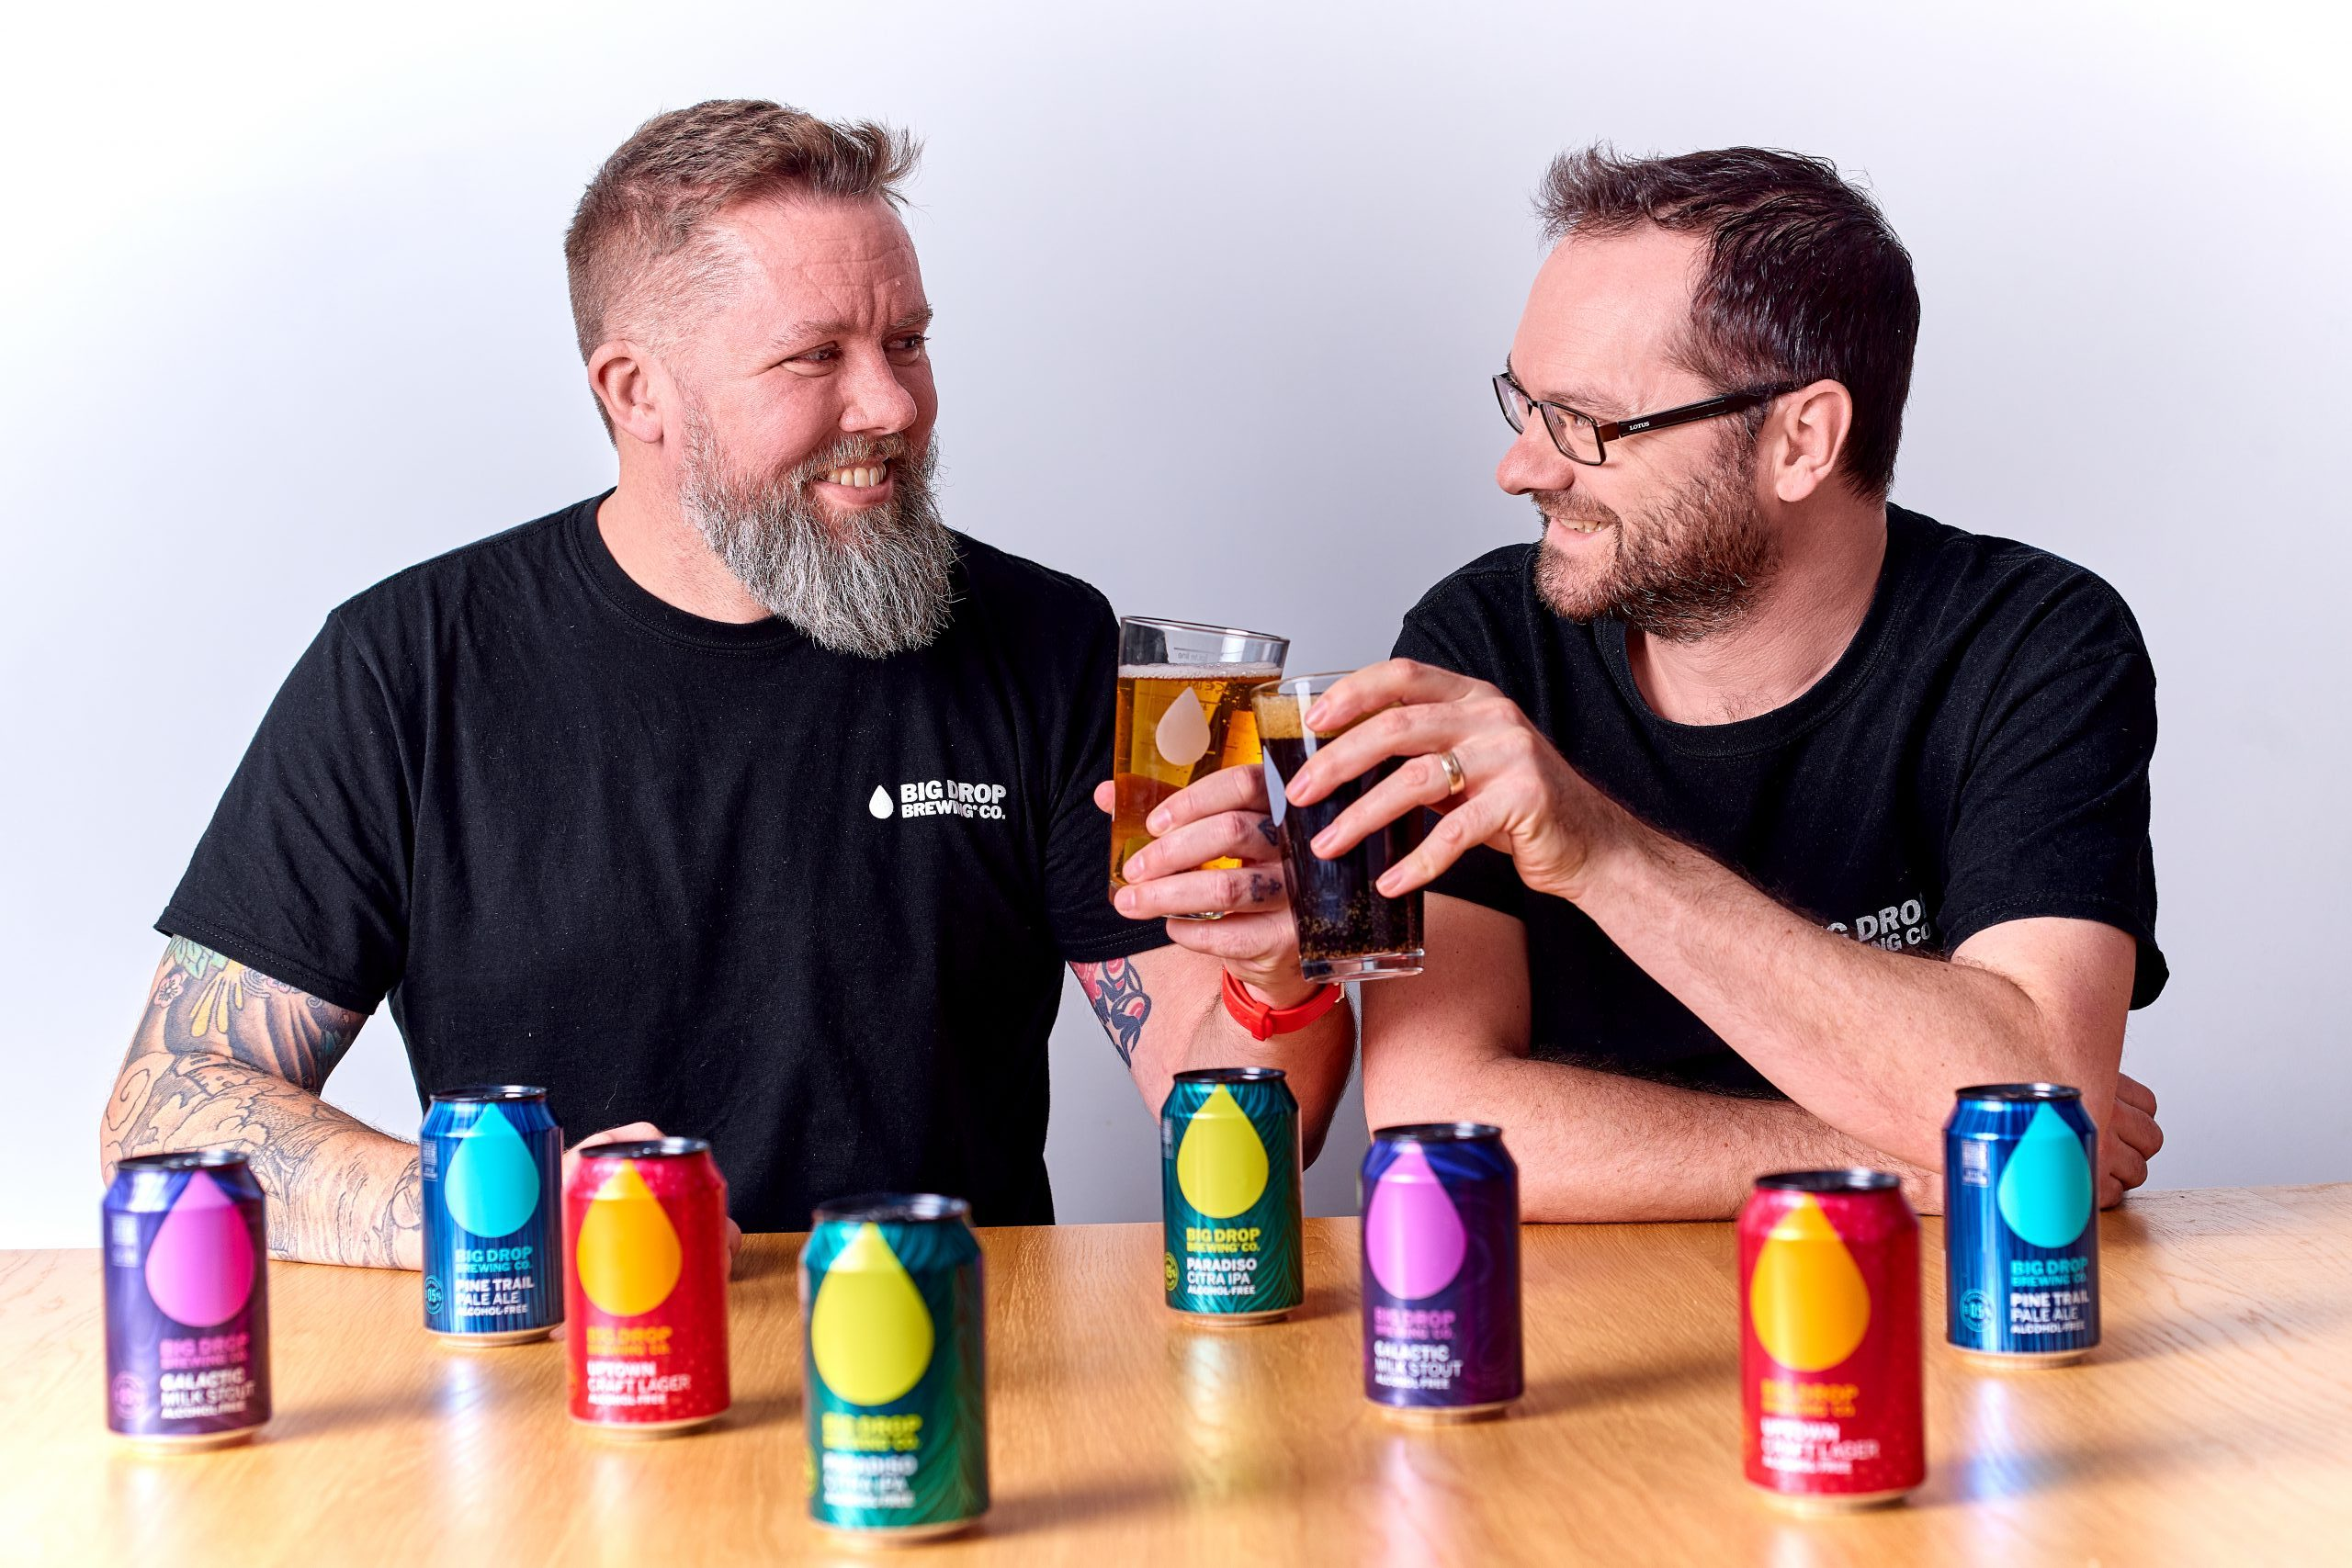 Rob Fink and James Kindred of Big Drop Brewing Co: How is alcohol free beer made? We ask the experts